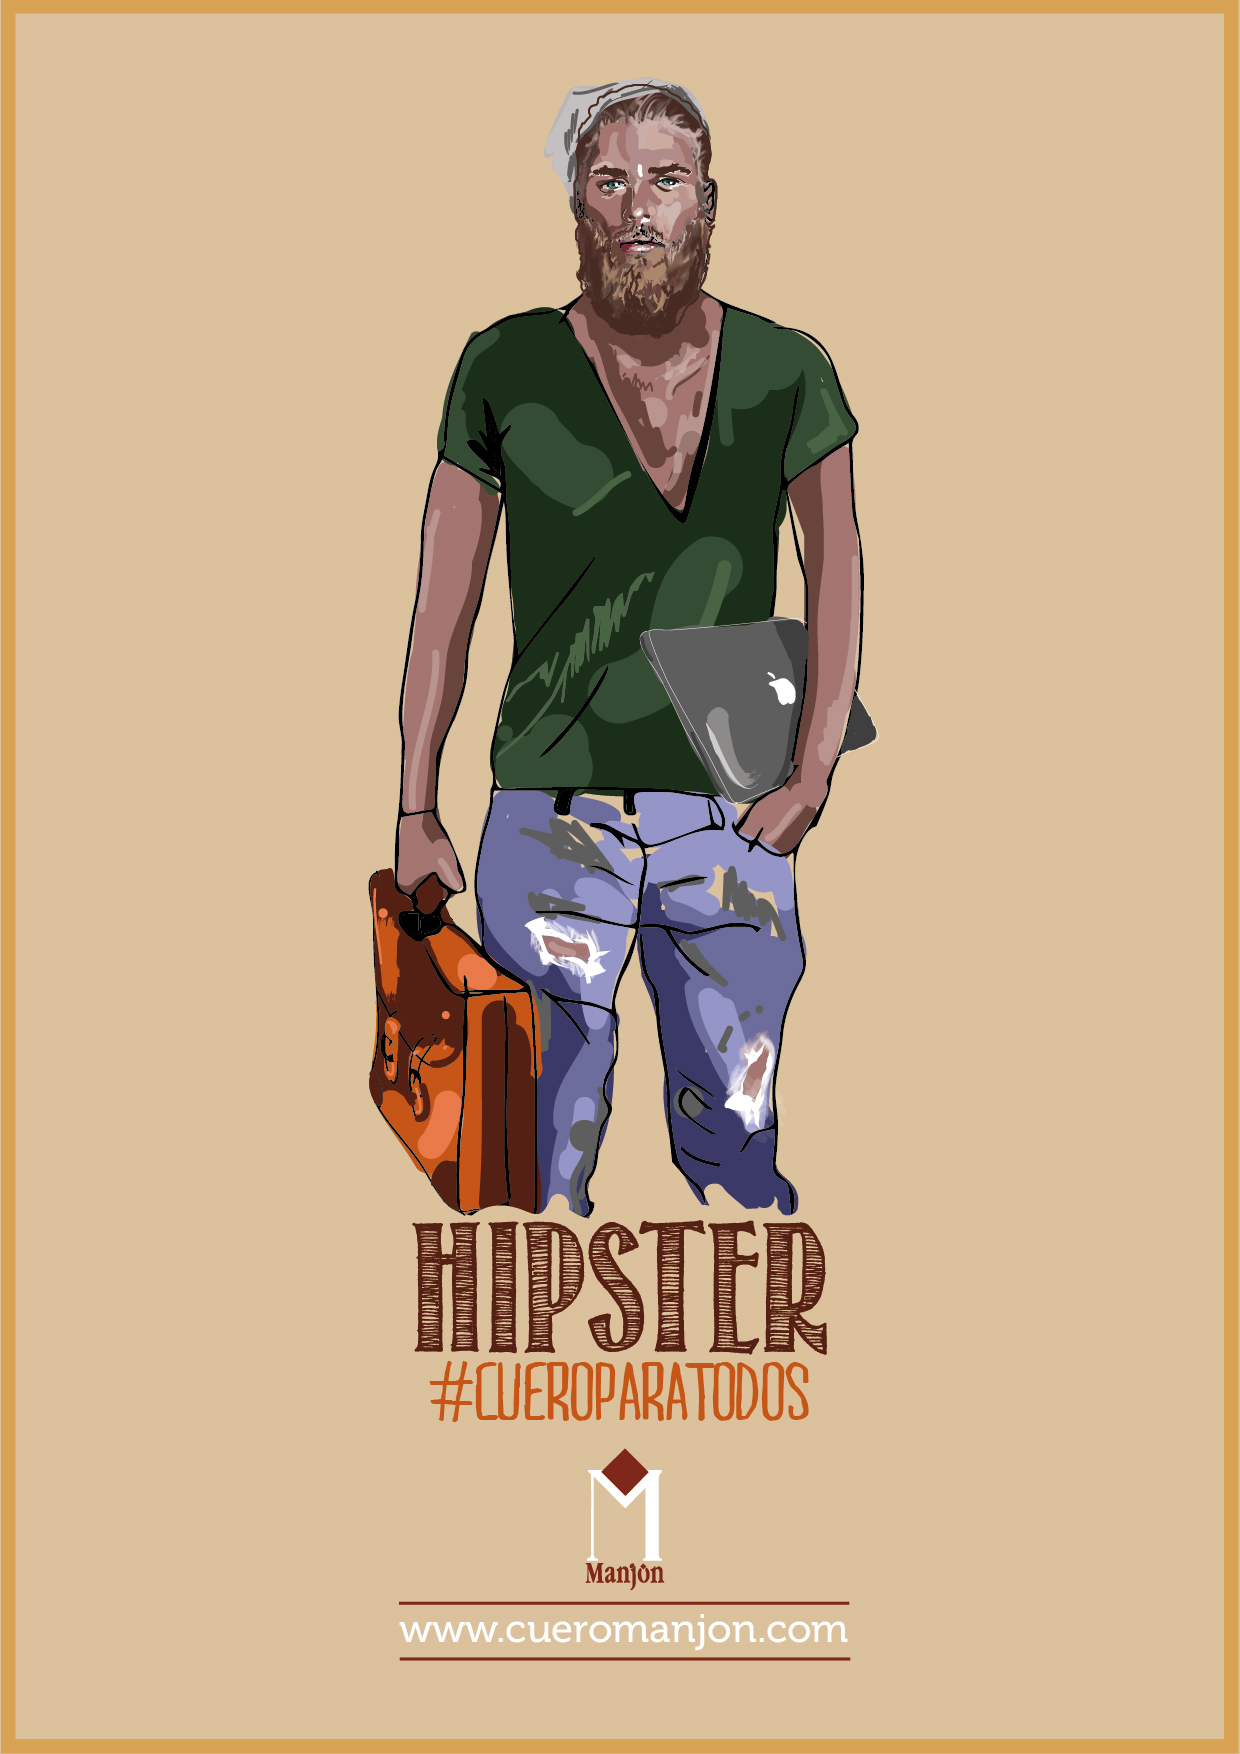 CPT Hipster